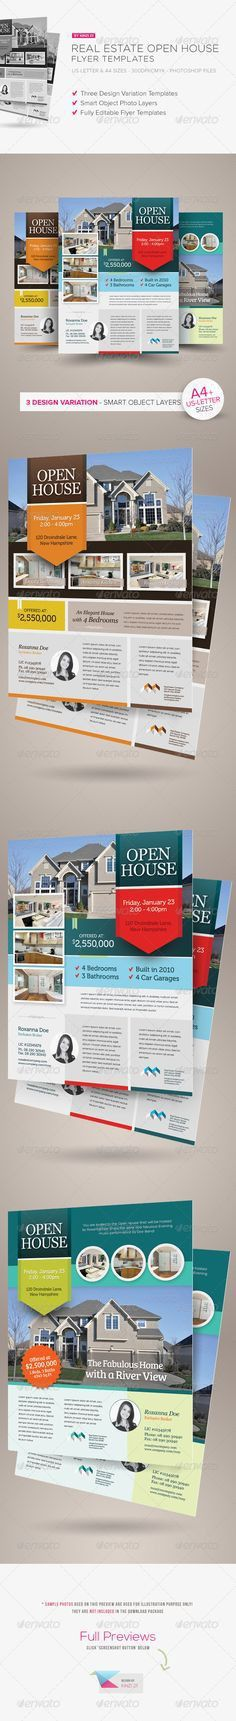 Real Estate - Open House Flyer / Magazine AD | Magazine ads, Open ...